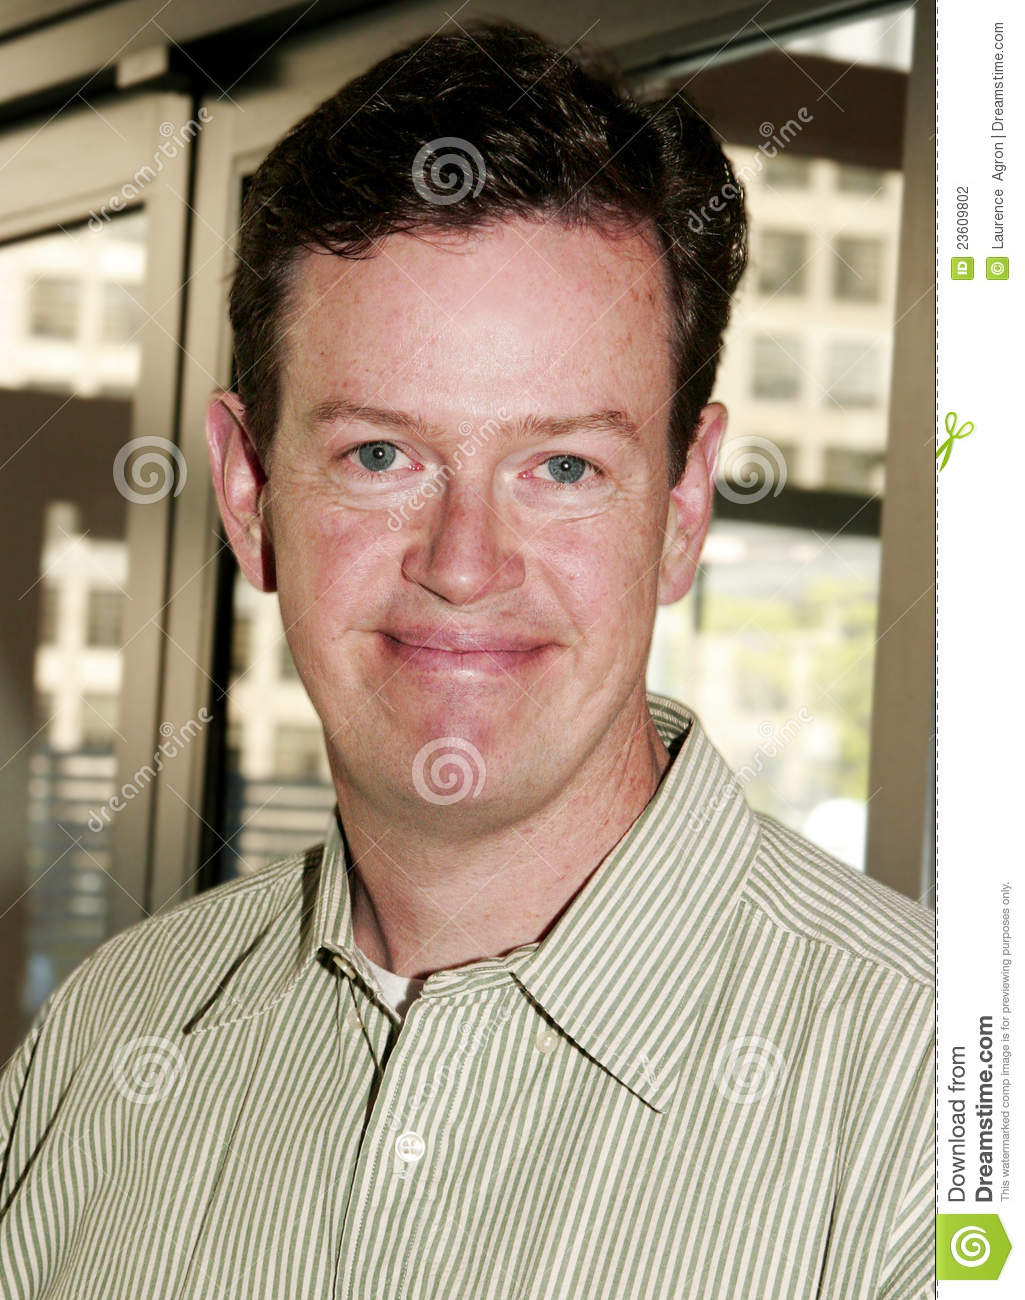 dylan bakerdylan baker parkour, dylan baker, dylan baker imdb, dylan baker actor, dylan baker wiki, dylan baker spider man, dylan baker facebook, dylan baker instagram, dylan baker youtube, dylan baker brother, dylan baker steve jobs, dylan baker baseball, dylan baker movies, dylan baker net worth, dylan baker audio books, dylan baker happiness, dylan baker the mentalist, dylan baker broadway, dylan baker milb, dylan baker wife